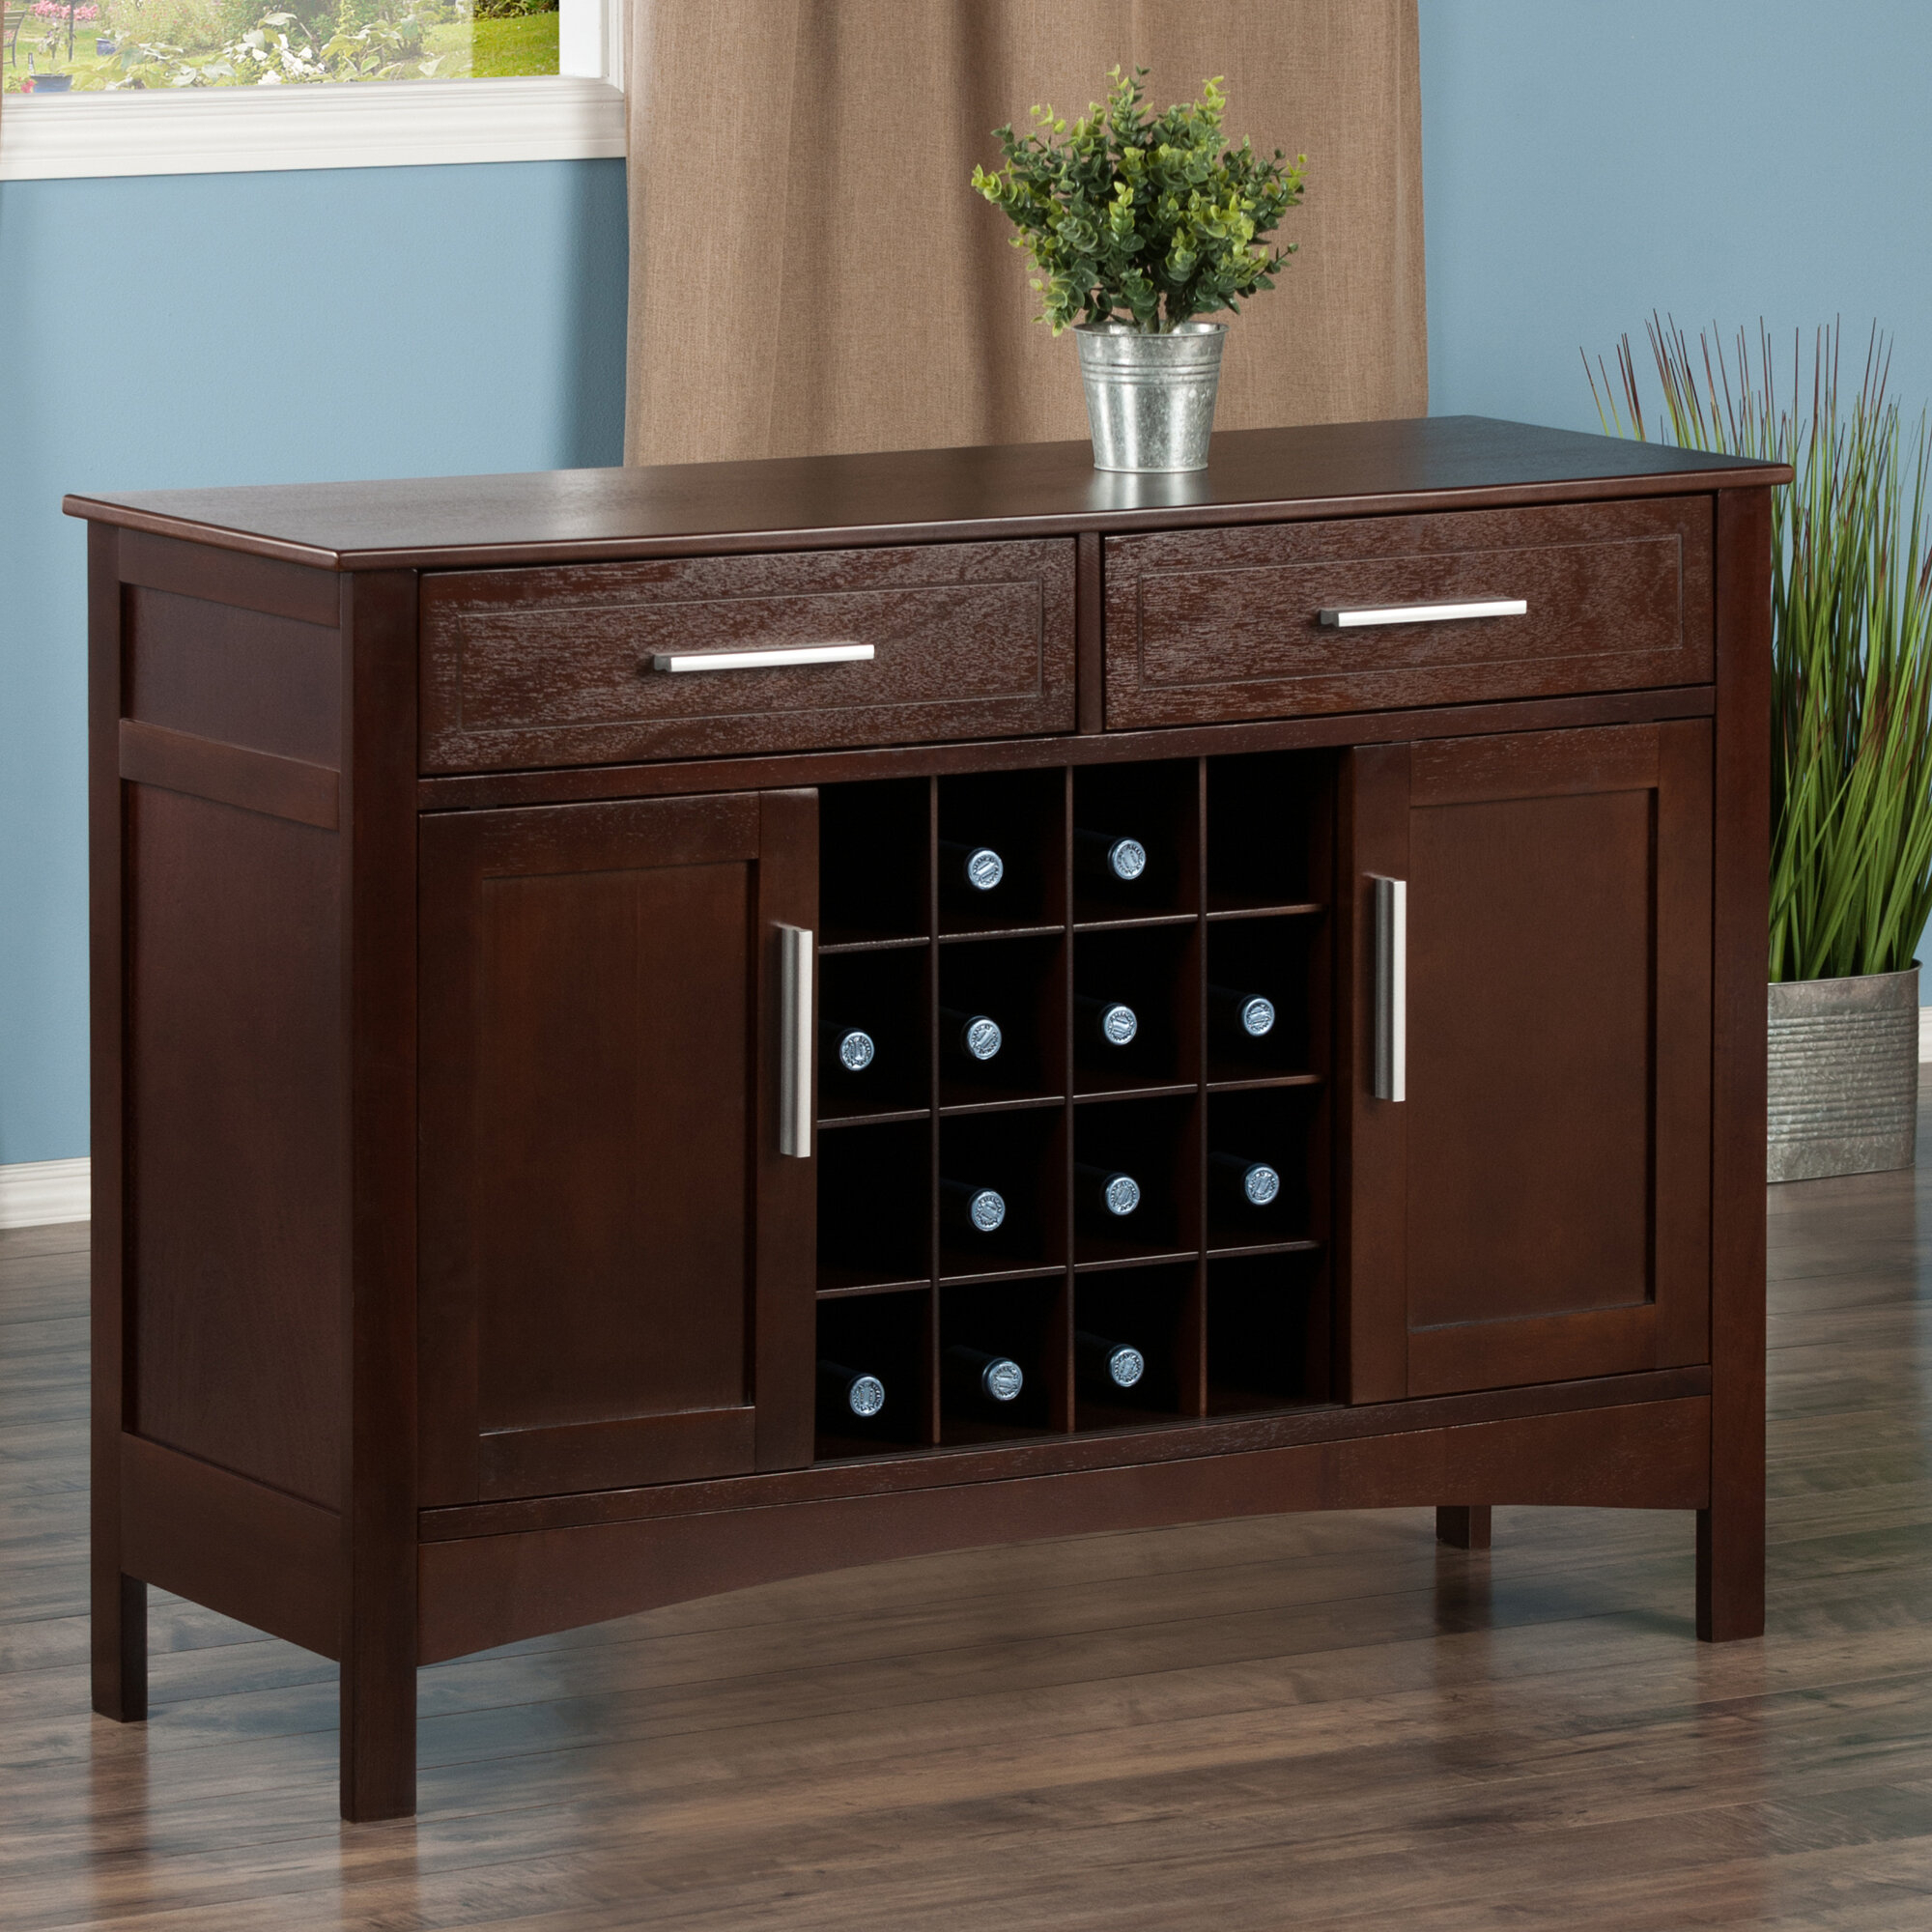 Bondurant Buffet Table With Regard To Contemporary Cappuccino Dining Buffets (View 6 of 30)